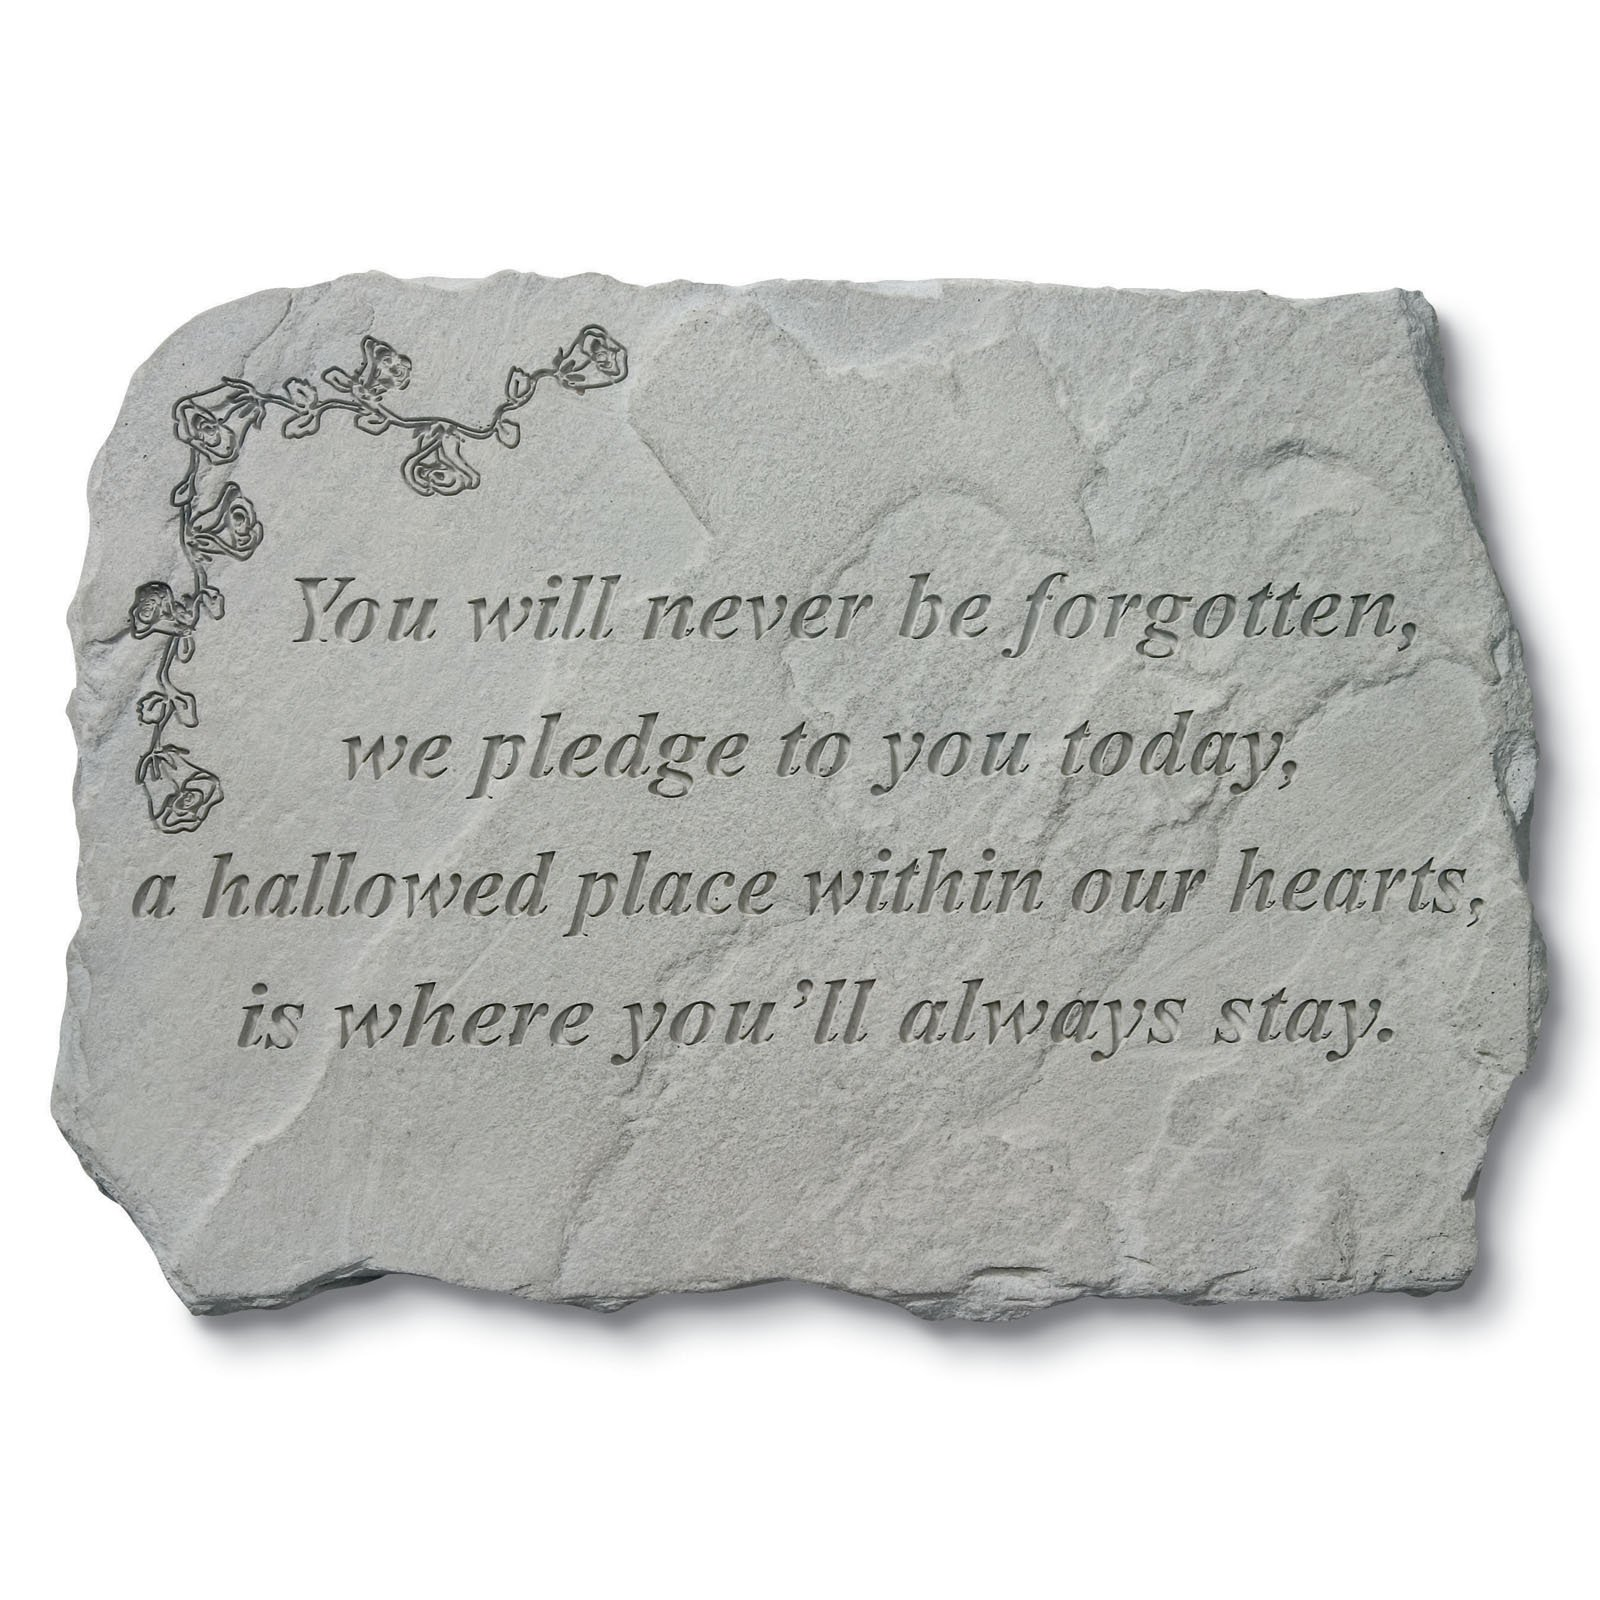 You Will Never Be Forgotten Memorial Accent Stone